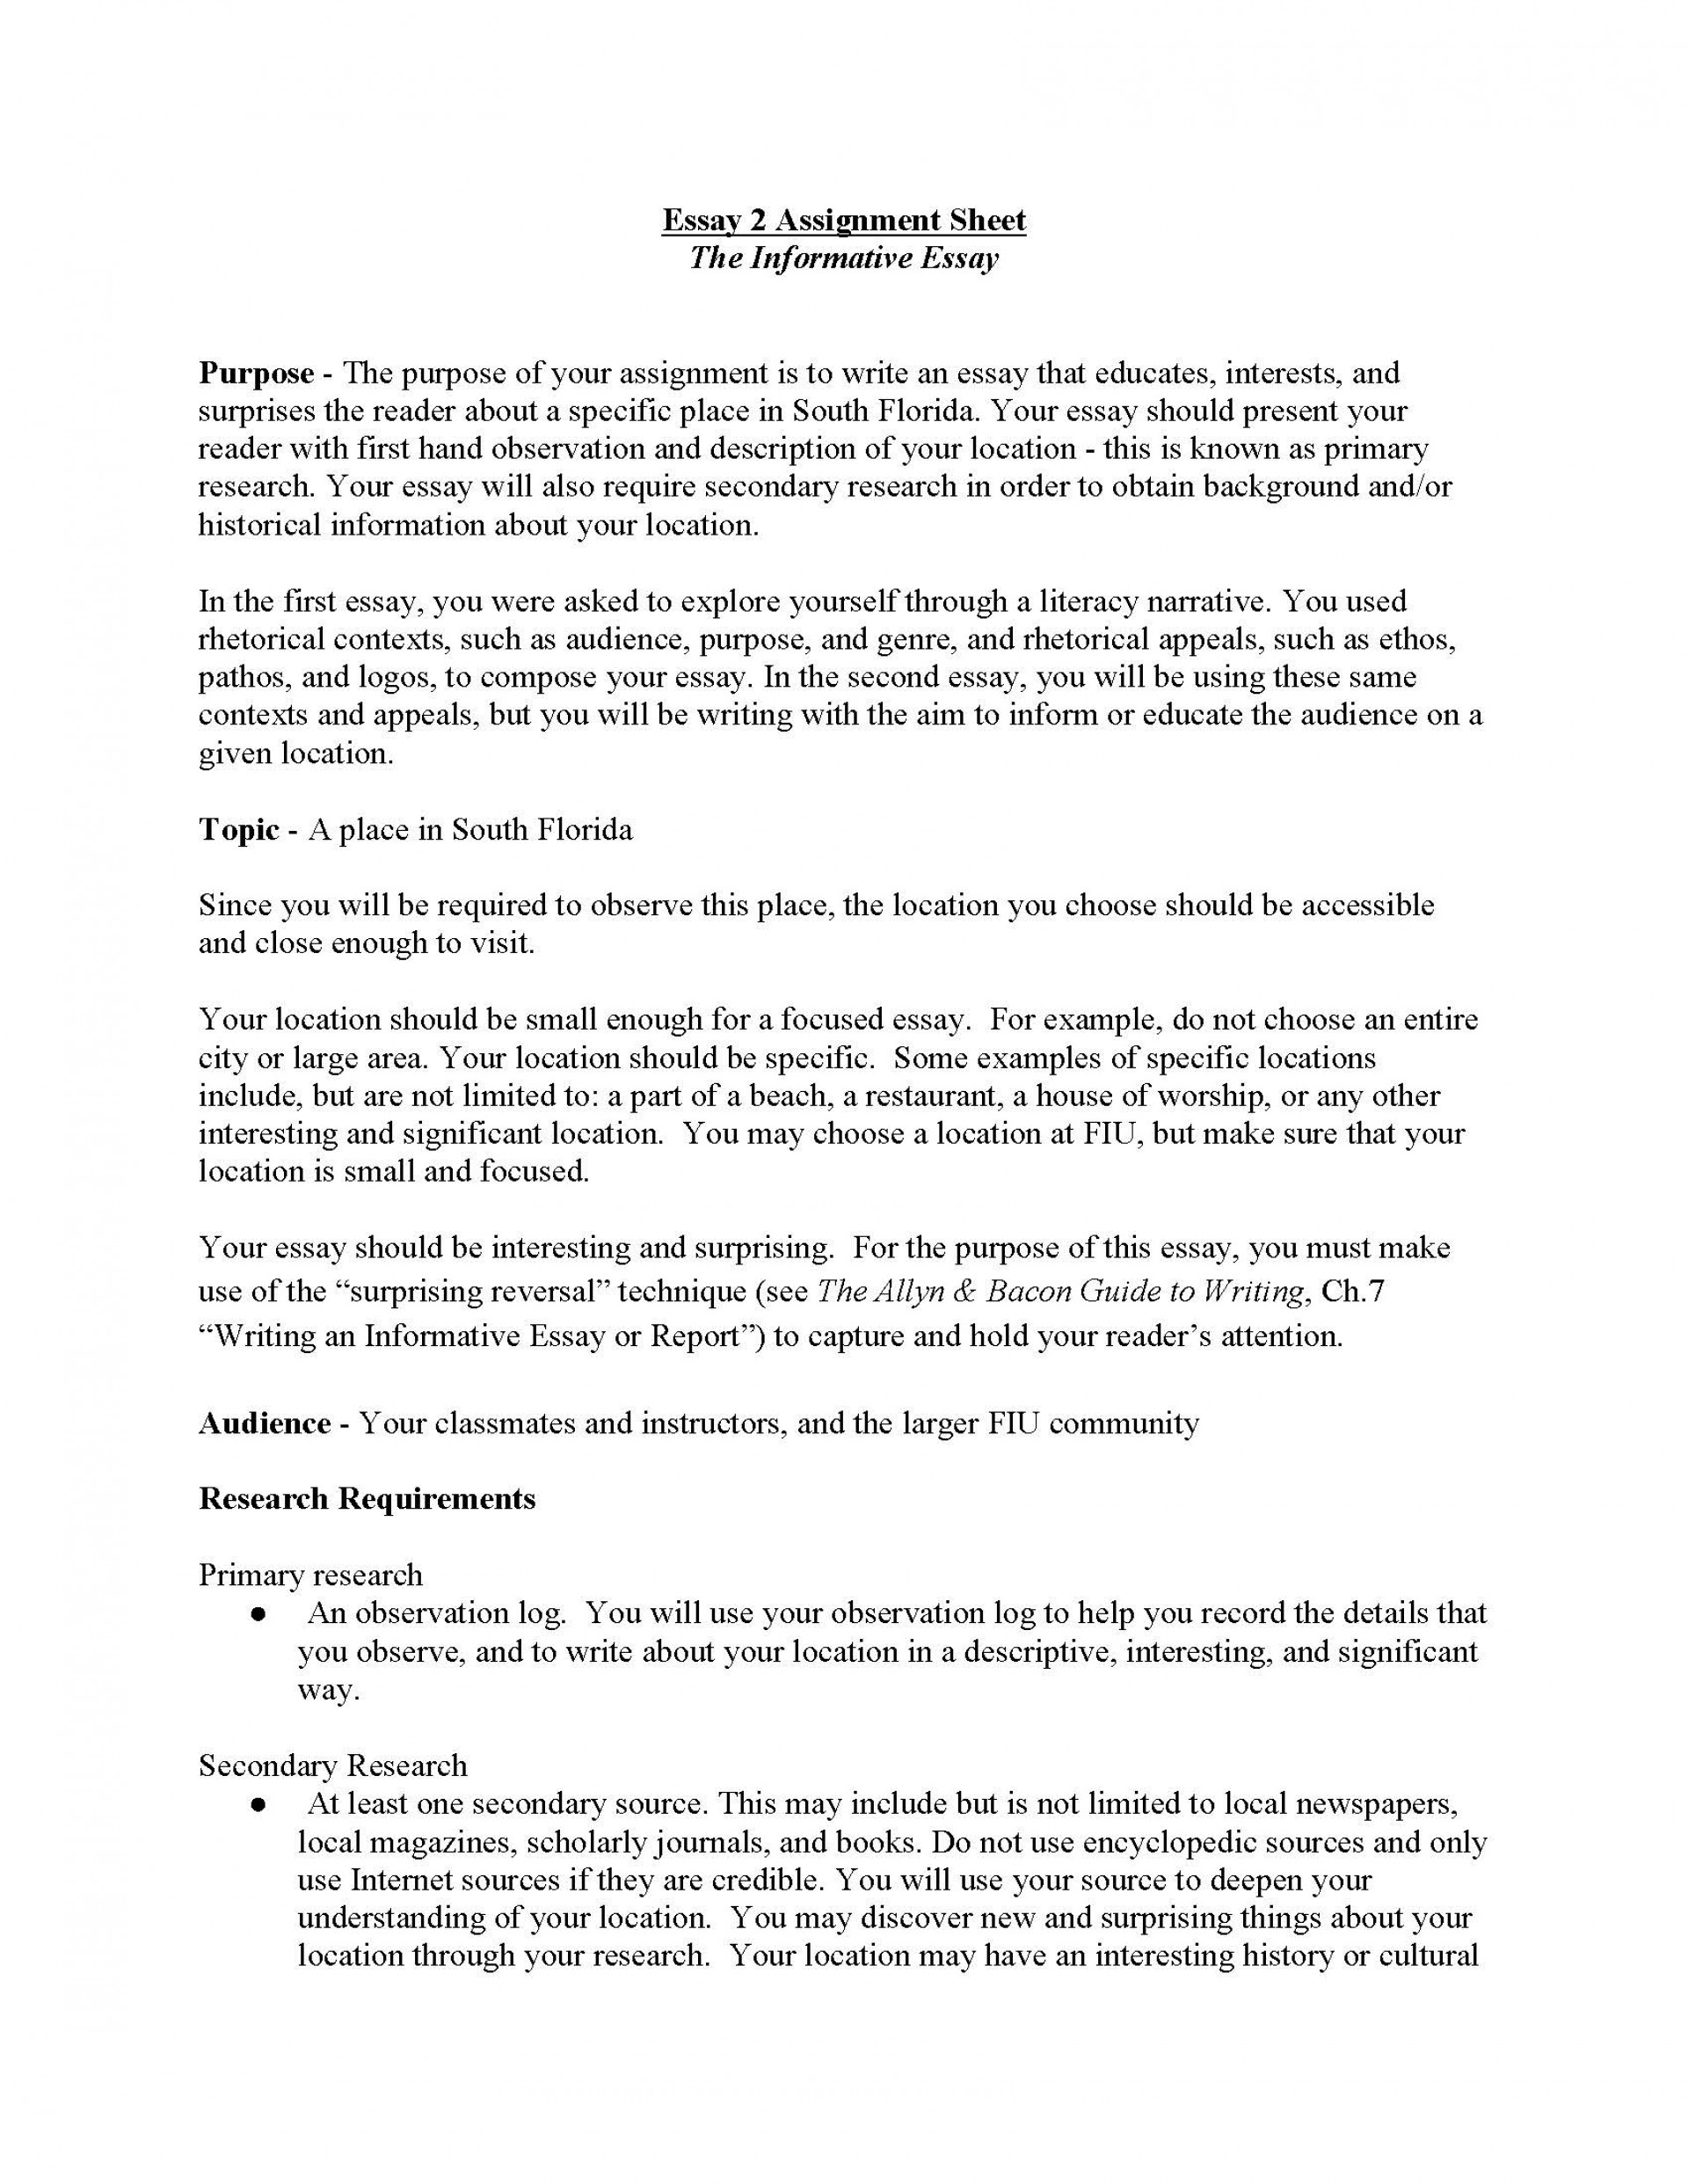 016 Informative Essay Unit Assignment Page 1 Example Sensational Hook Generator Hooks About Feminism College Examples 1920